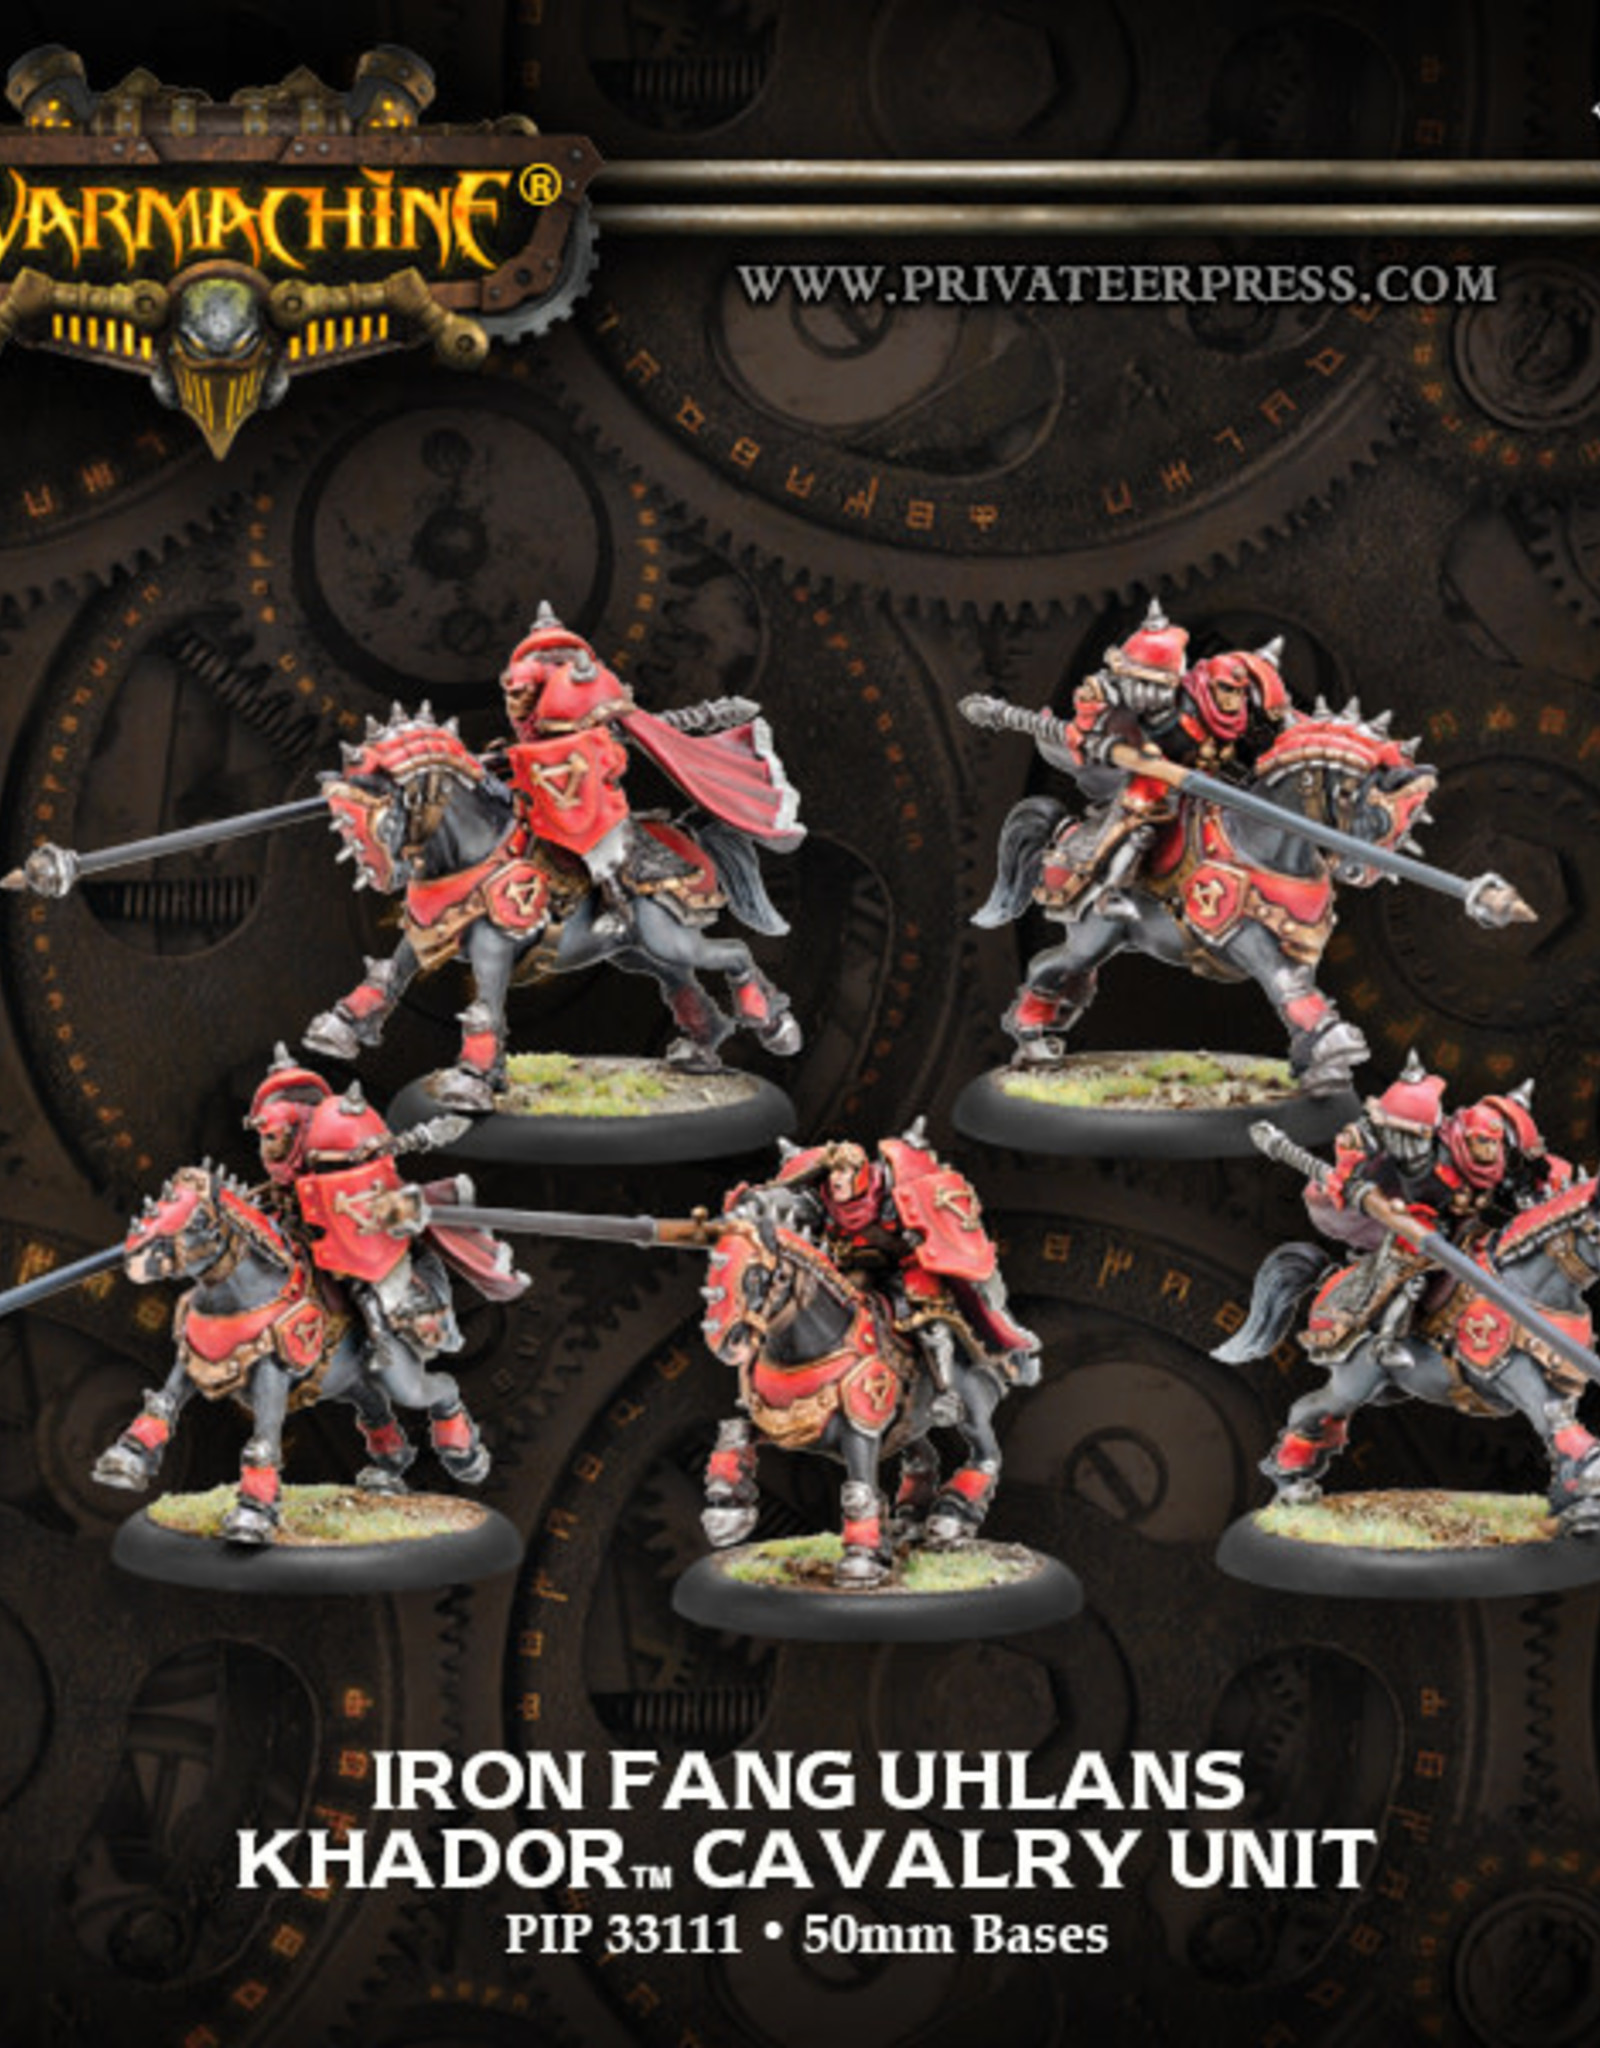 Warmachine Khador - Iron Fang Uhlans